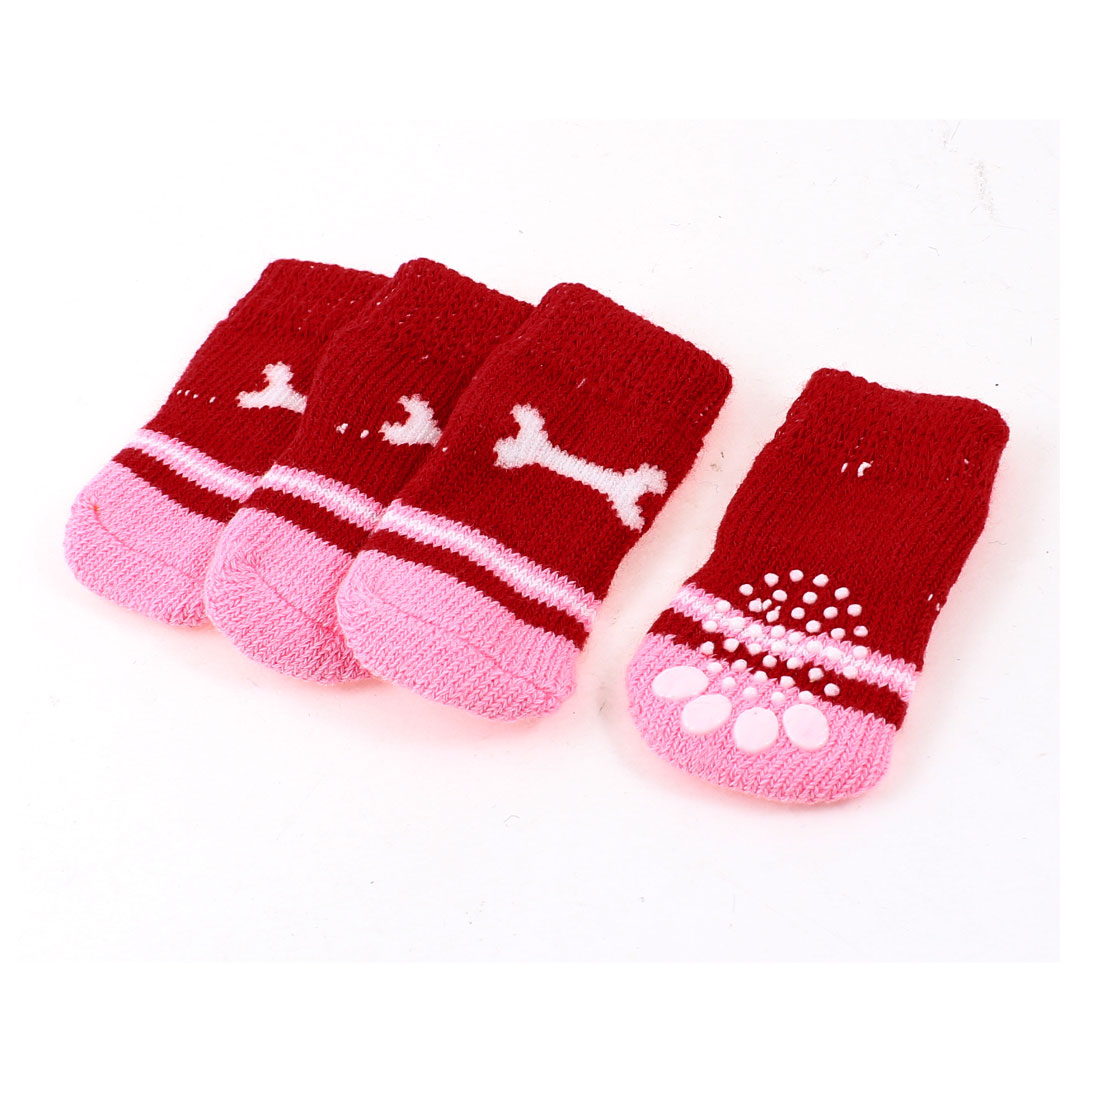 2 Pairs Red Pink Nonslip Bone Printed Acrylic Doggie Puppy Pet Socks Size S